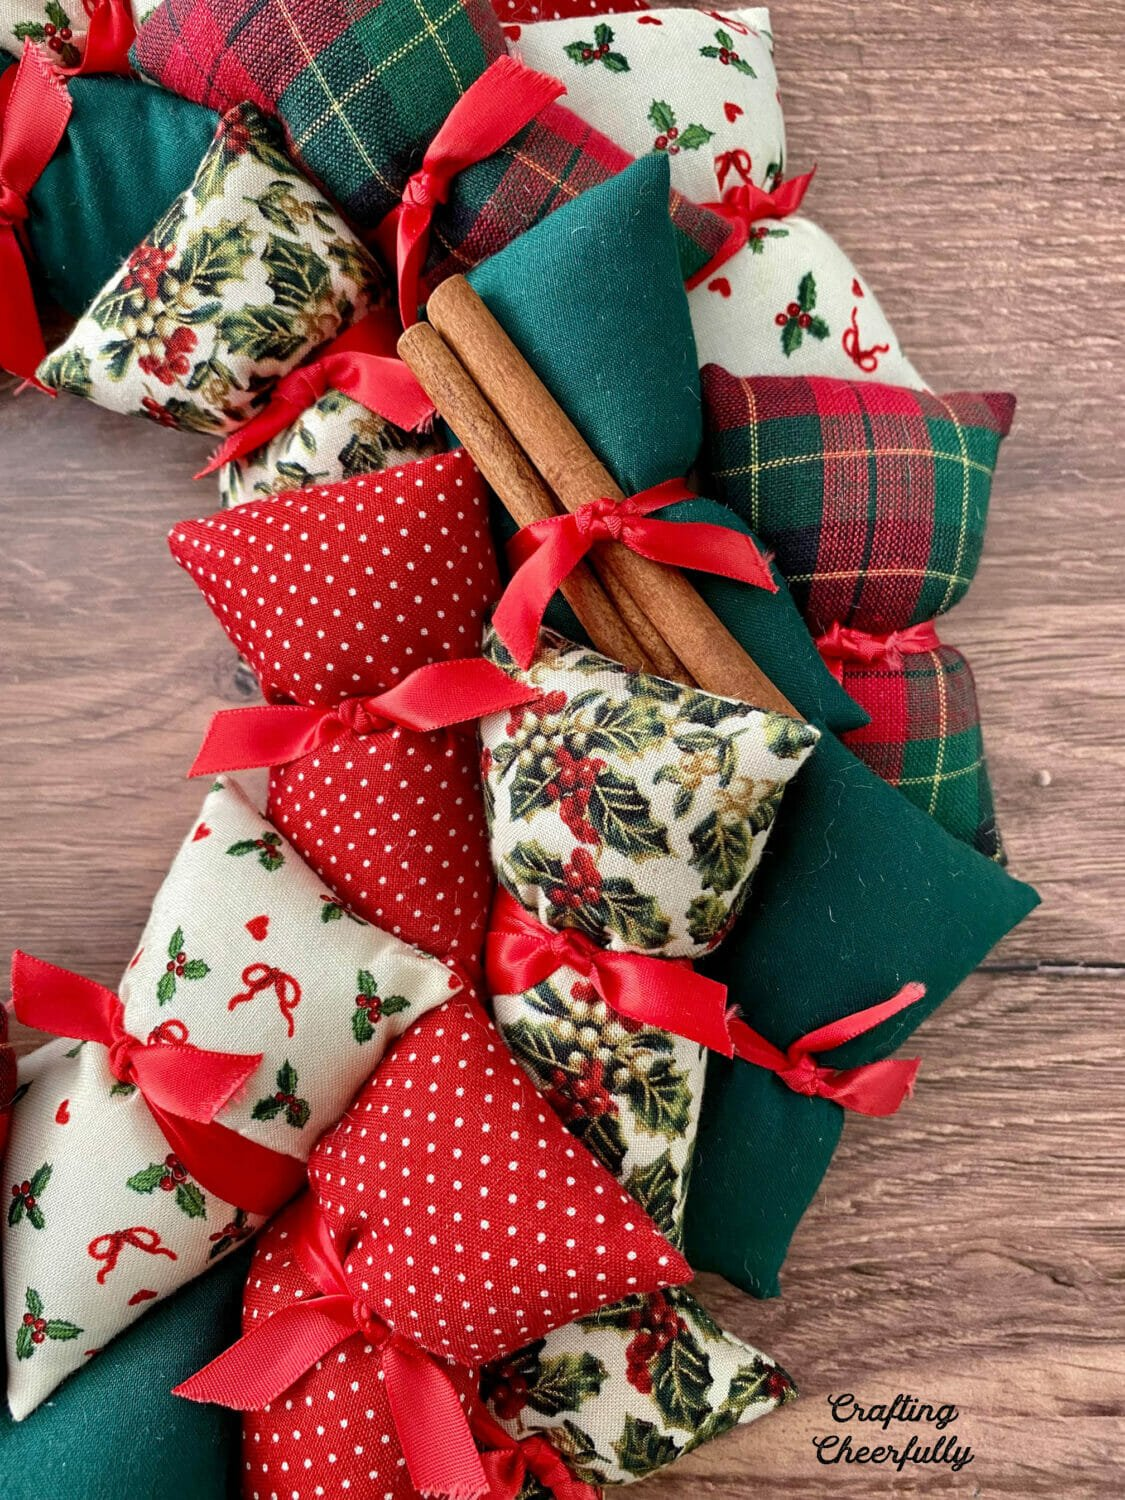 DIY holiday pillow wreath using Christmas fabrics in red, green and white lays on a wooden table.